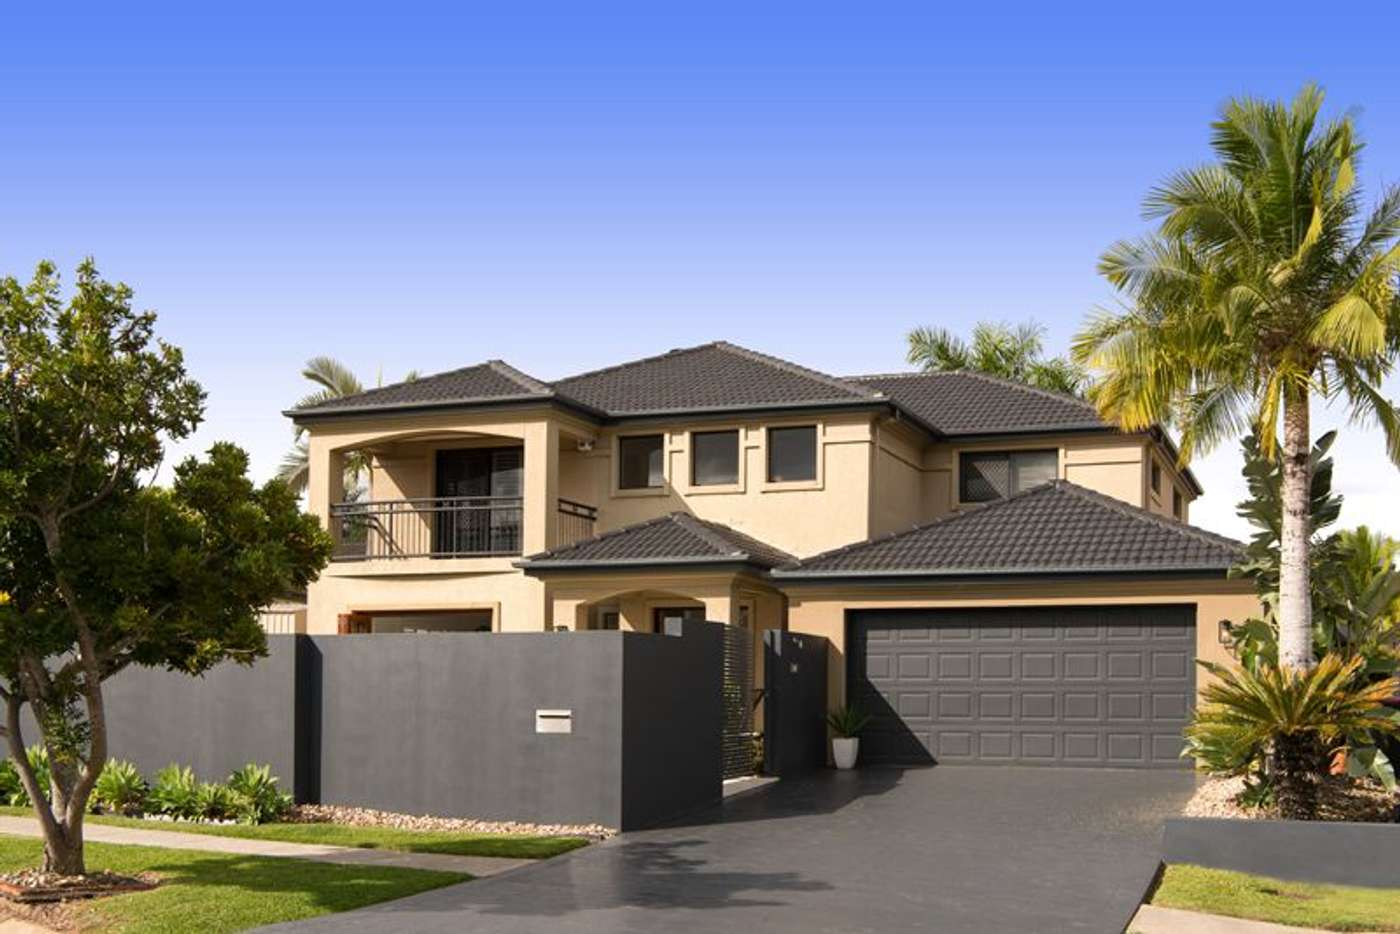 Main view of Homely house listing, 57 Amersham Crescent, Carindale QLD 4152